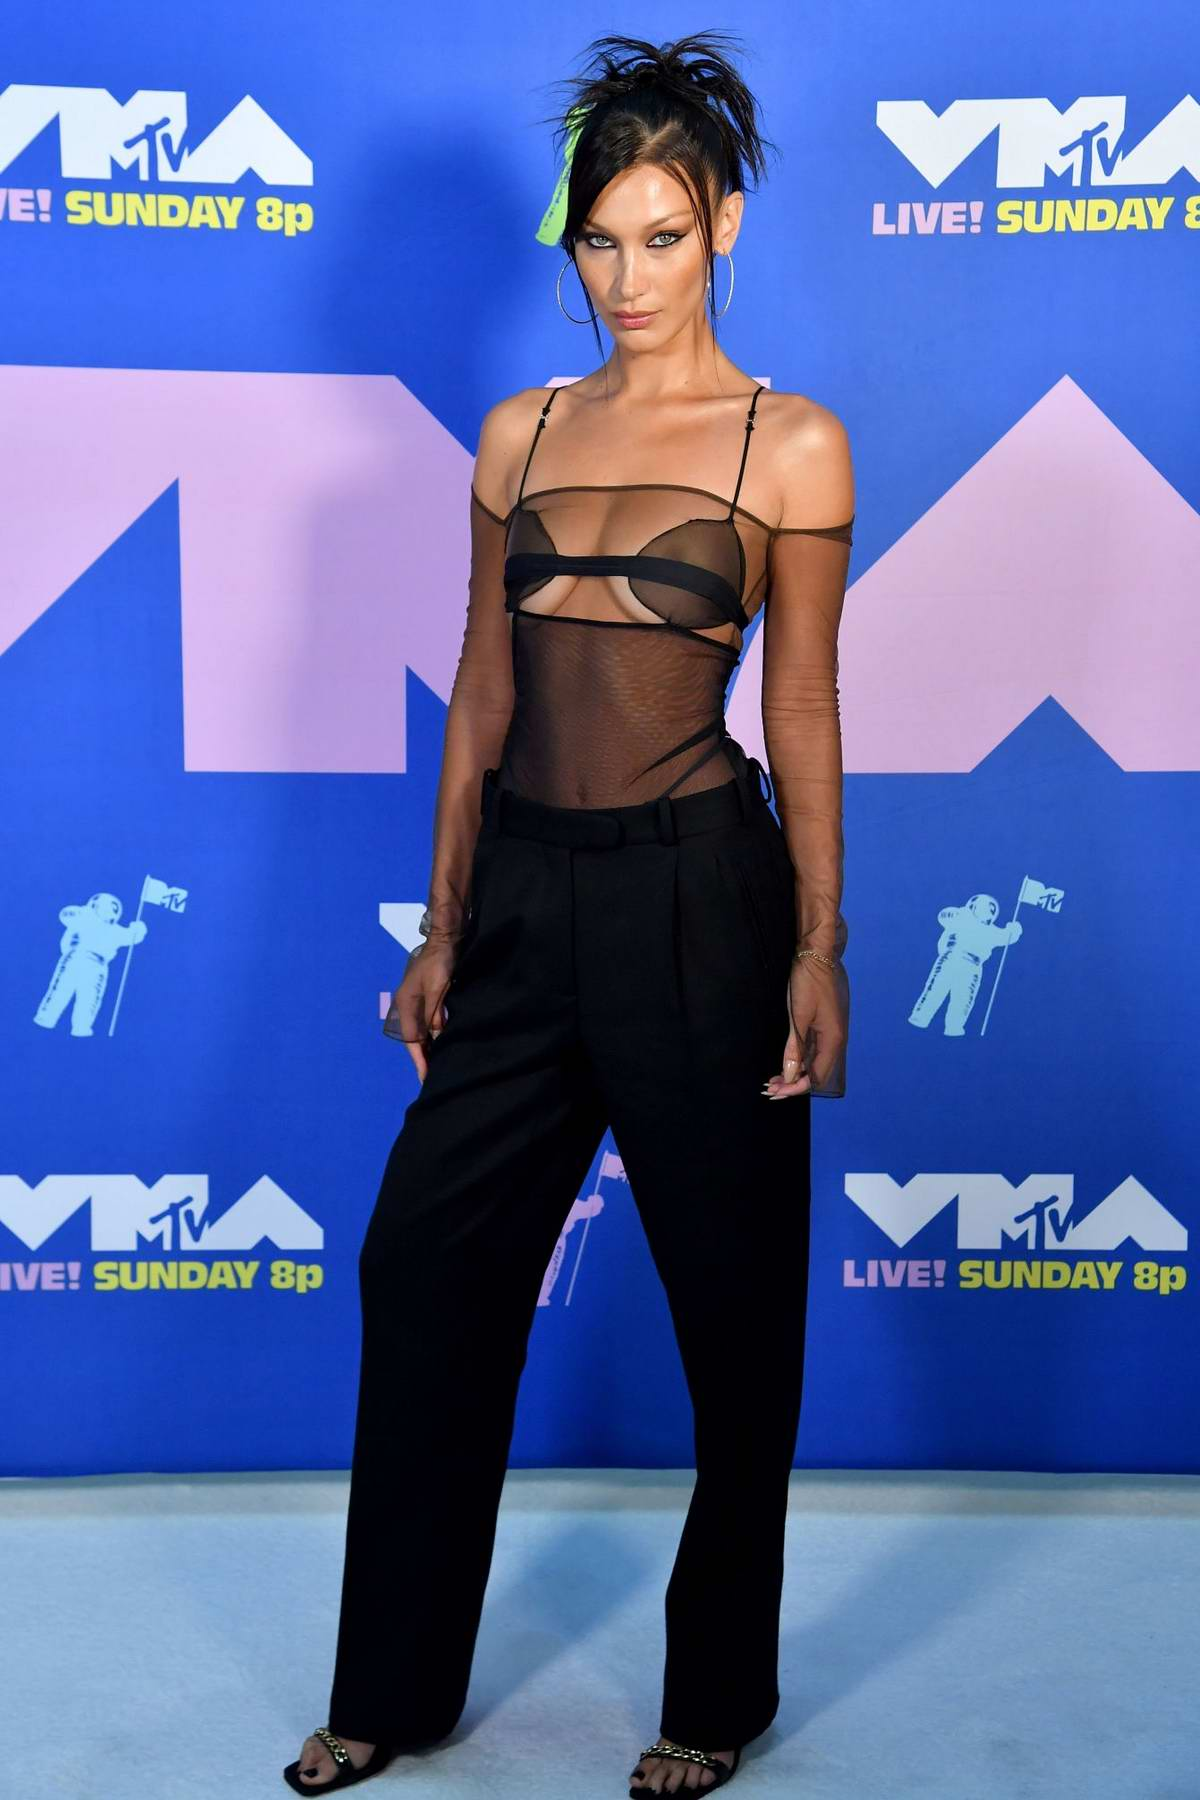 Bella Hadid attends the 2020 MTV Video Music Awards in New York City